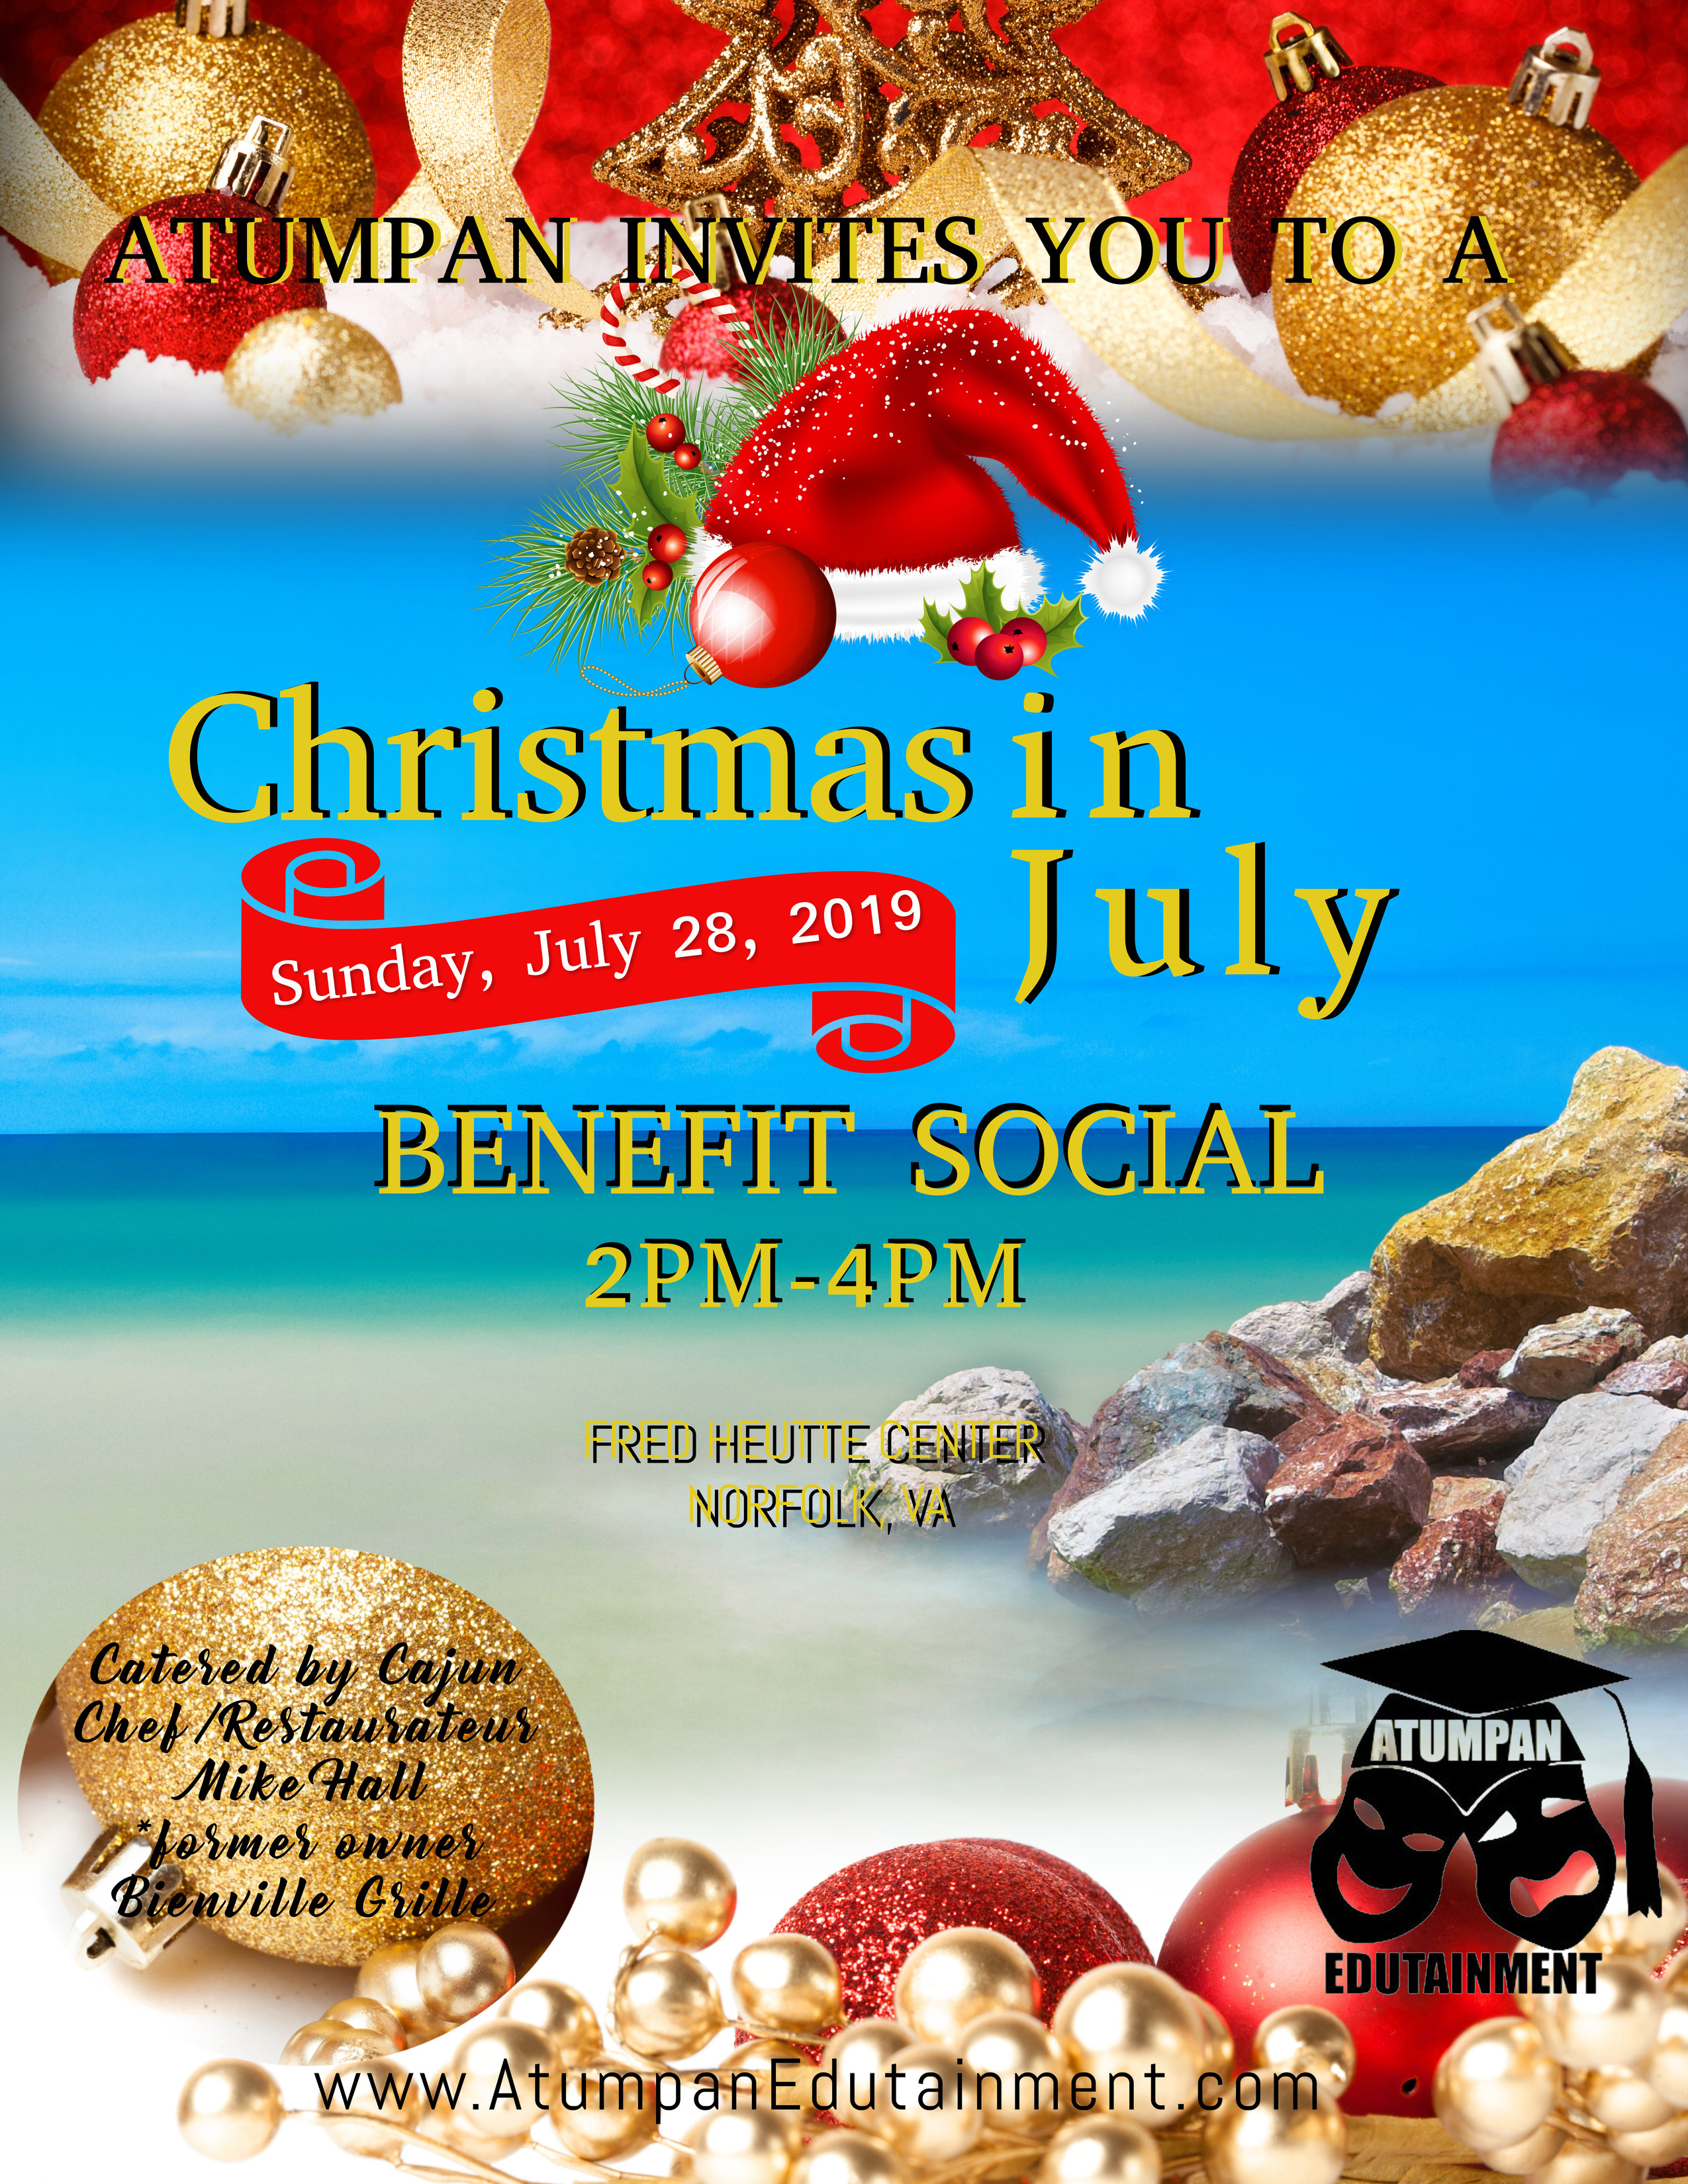 Christmas In July 2019 Images.Merry Christmas In July 2019 Wishes Poster